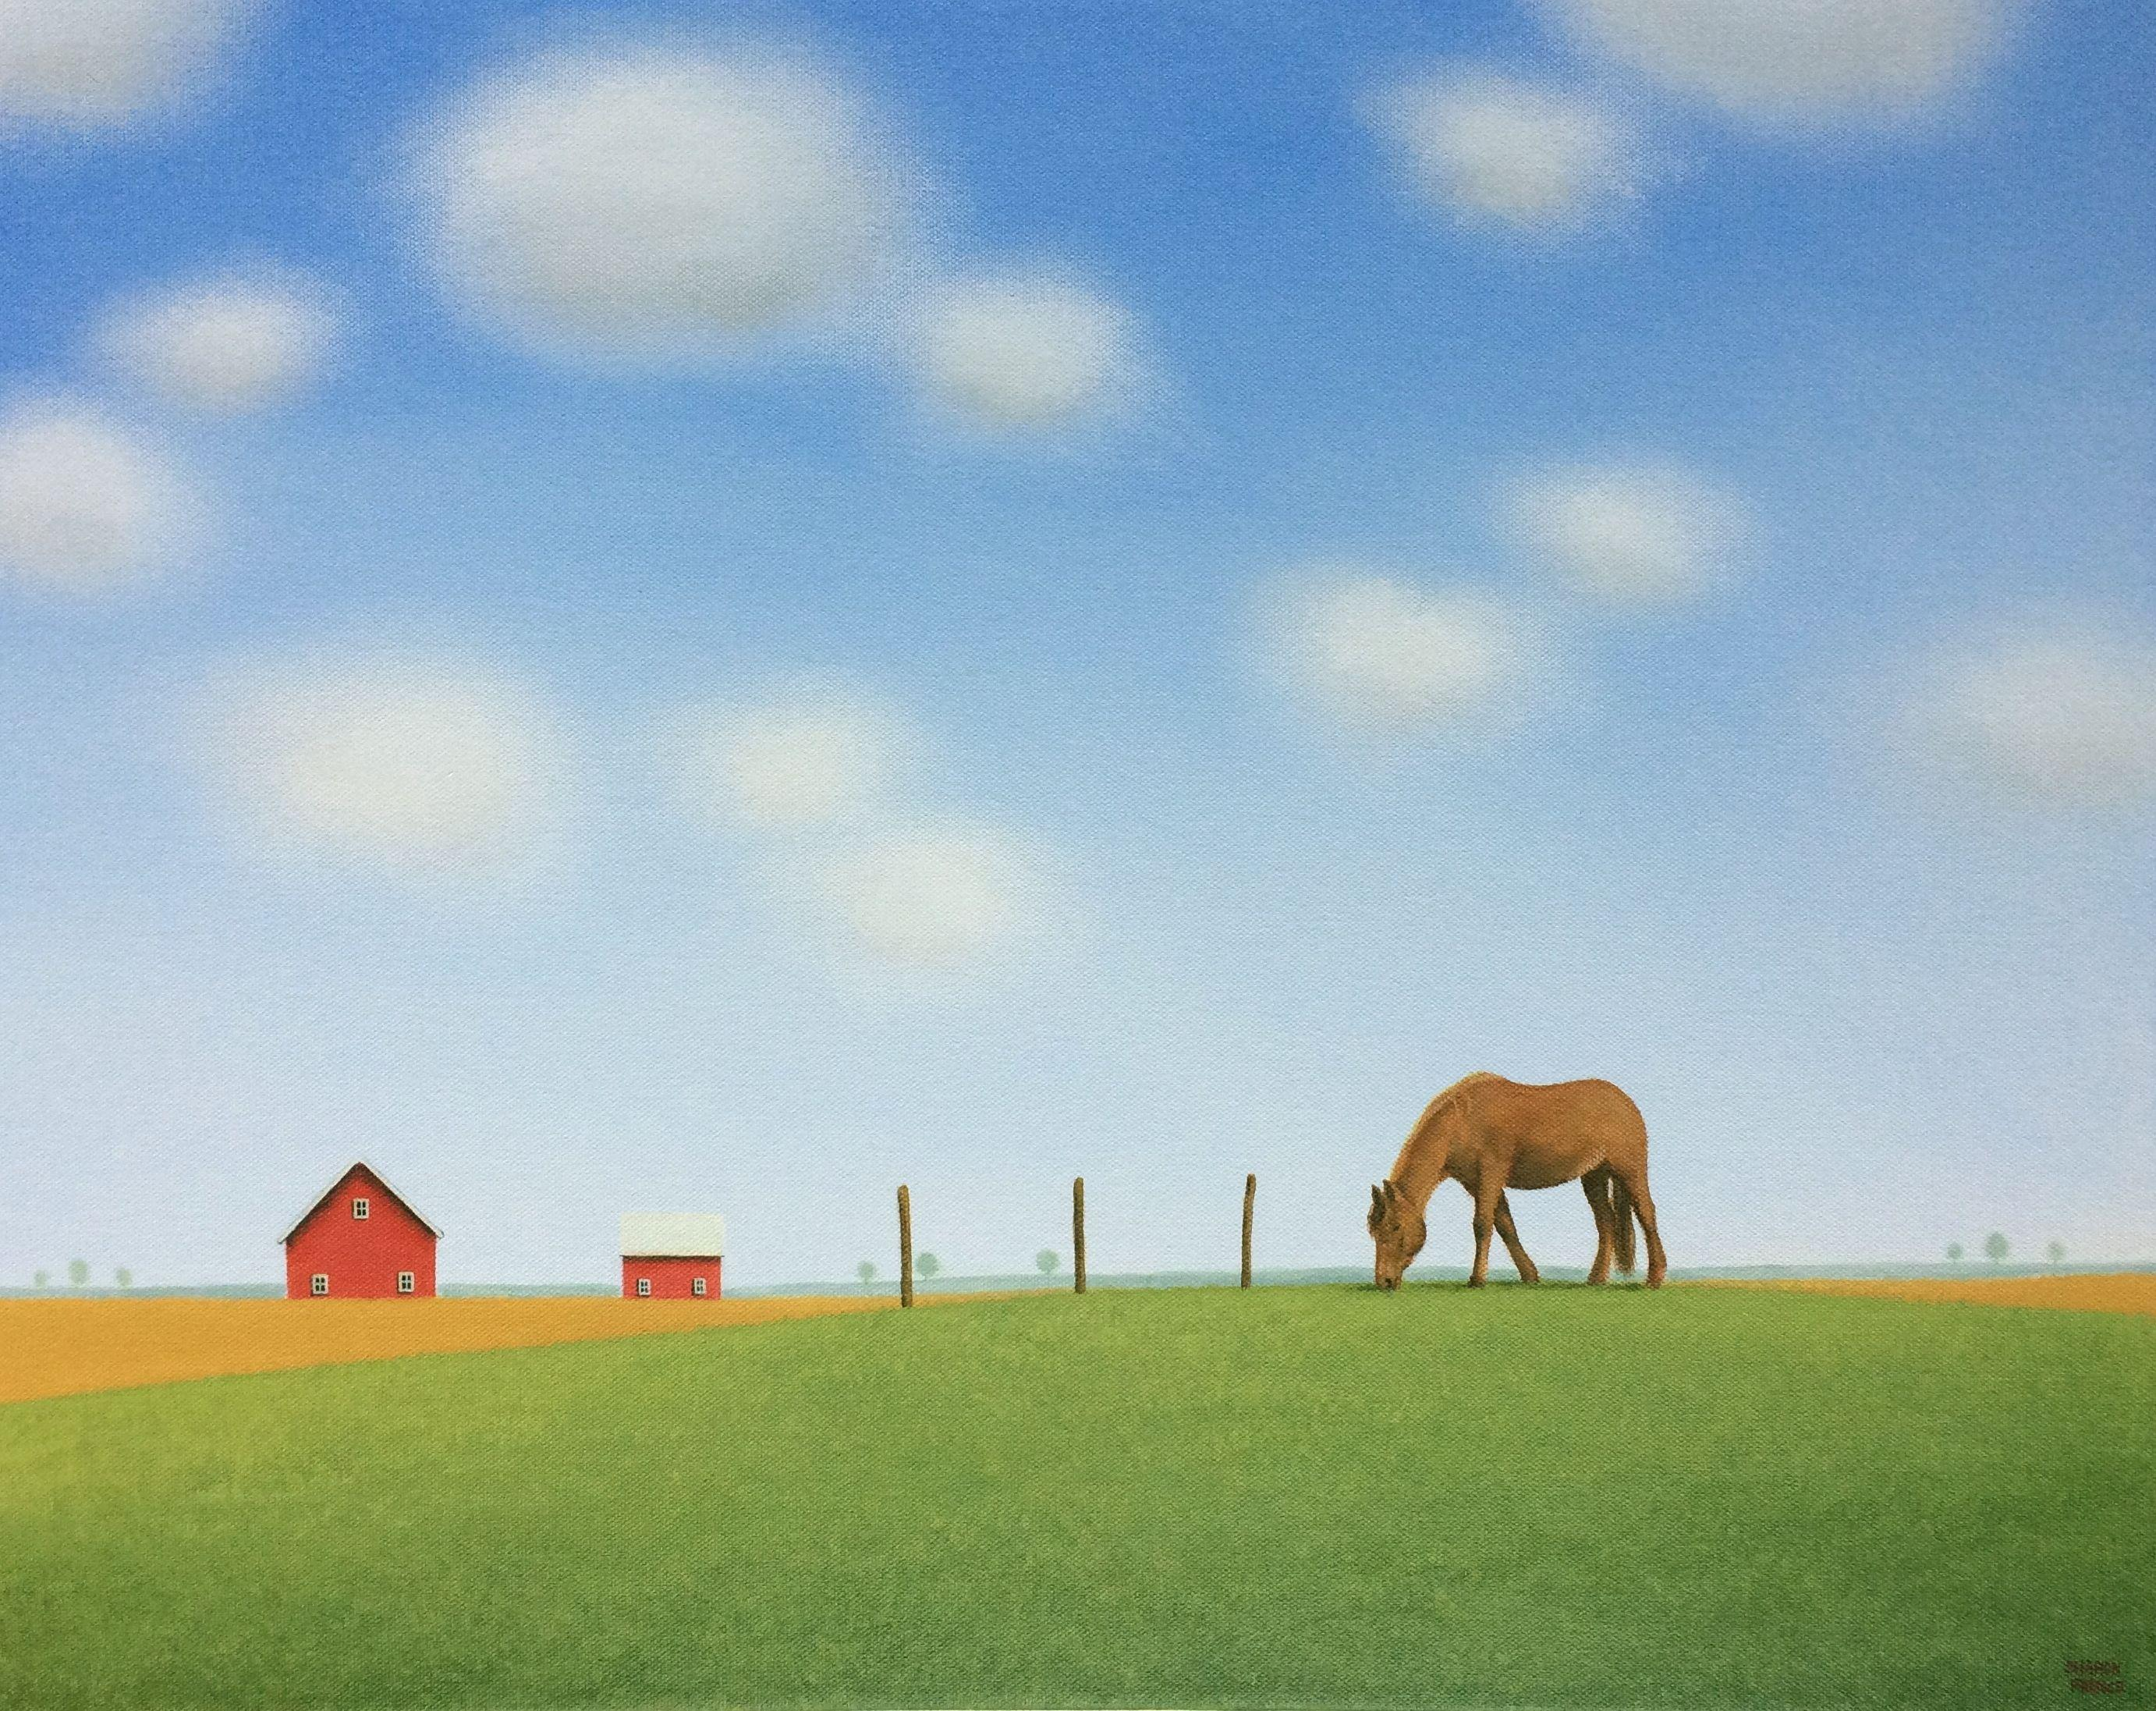 On a Peaceful Summers Day, Painting, Acrylic on Canvas